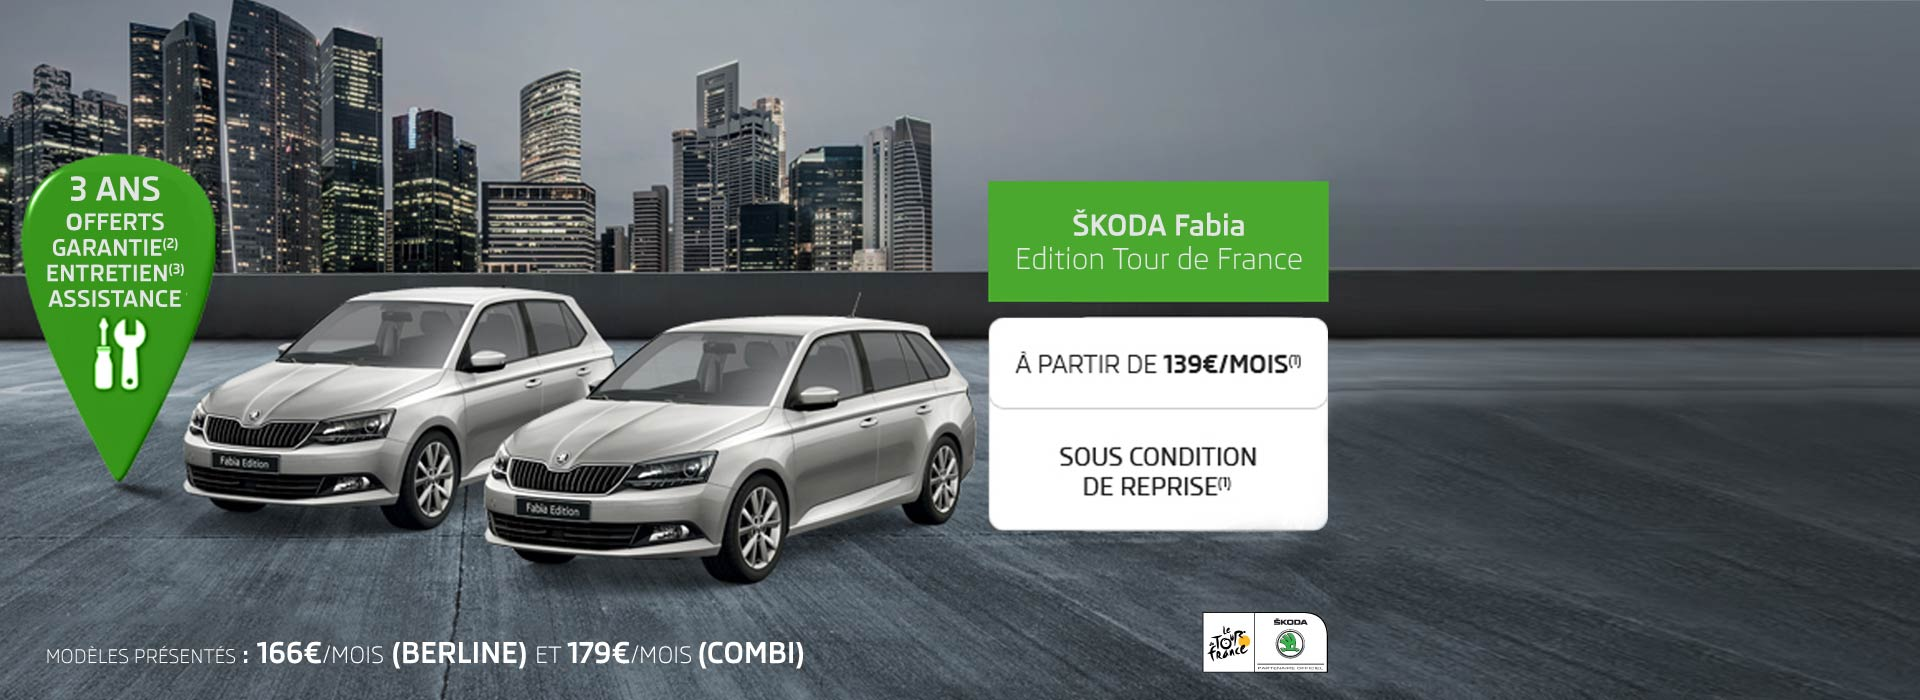 nantes votre concessionnaire voitures neuves et occasion pi ces atelier et services skoda. Black Bedroom Furniture Sets. Home Design Ideas